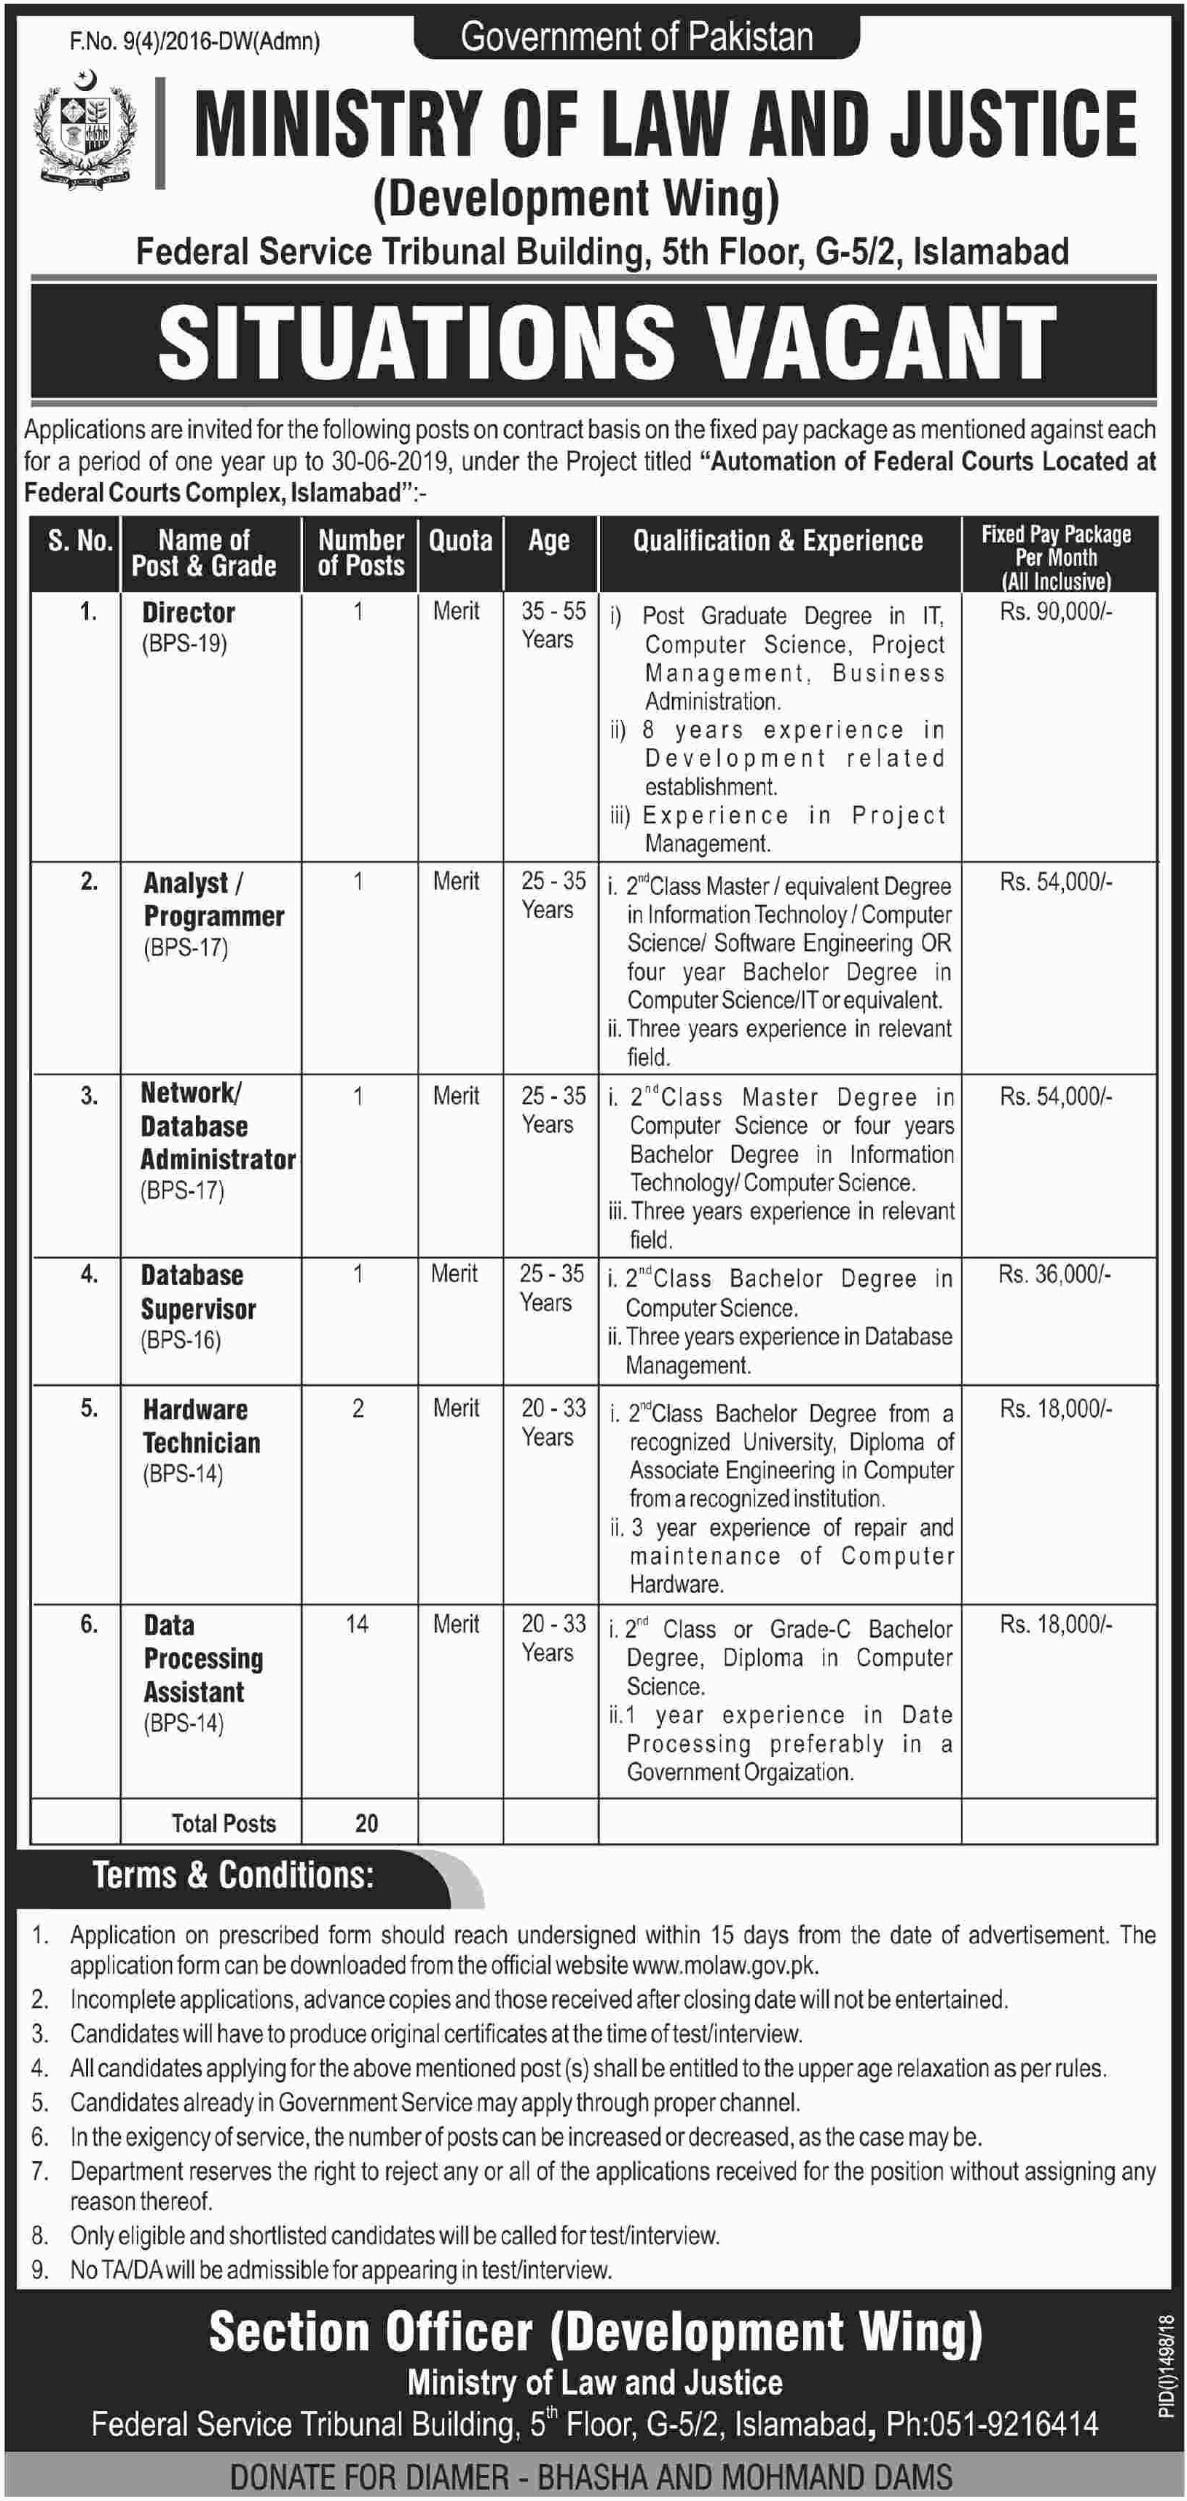 Ministry of Law & Justice Islamabad Government of Pakistan Jobs 2018